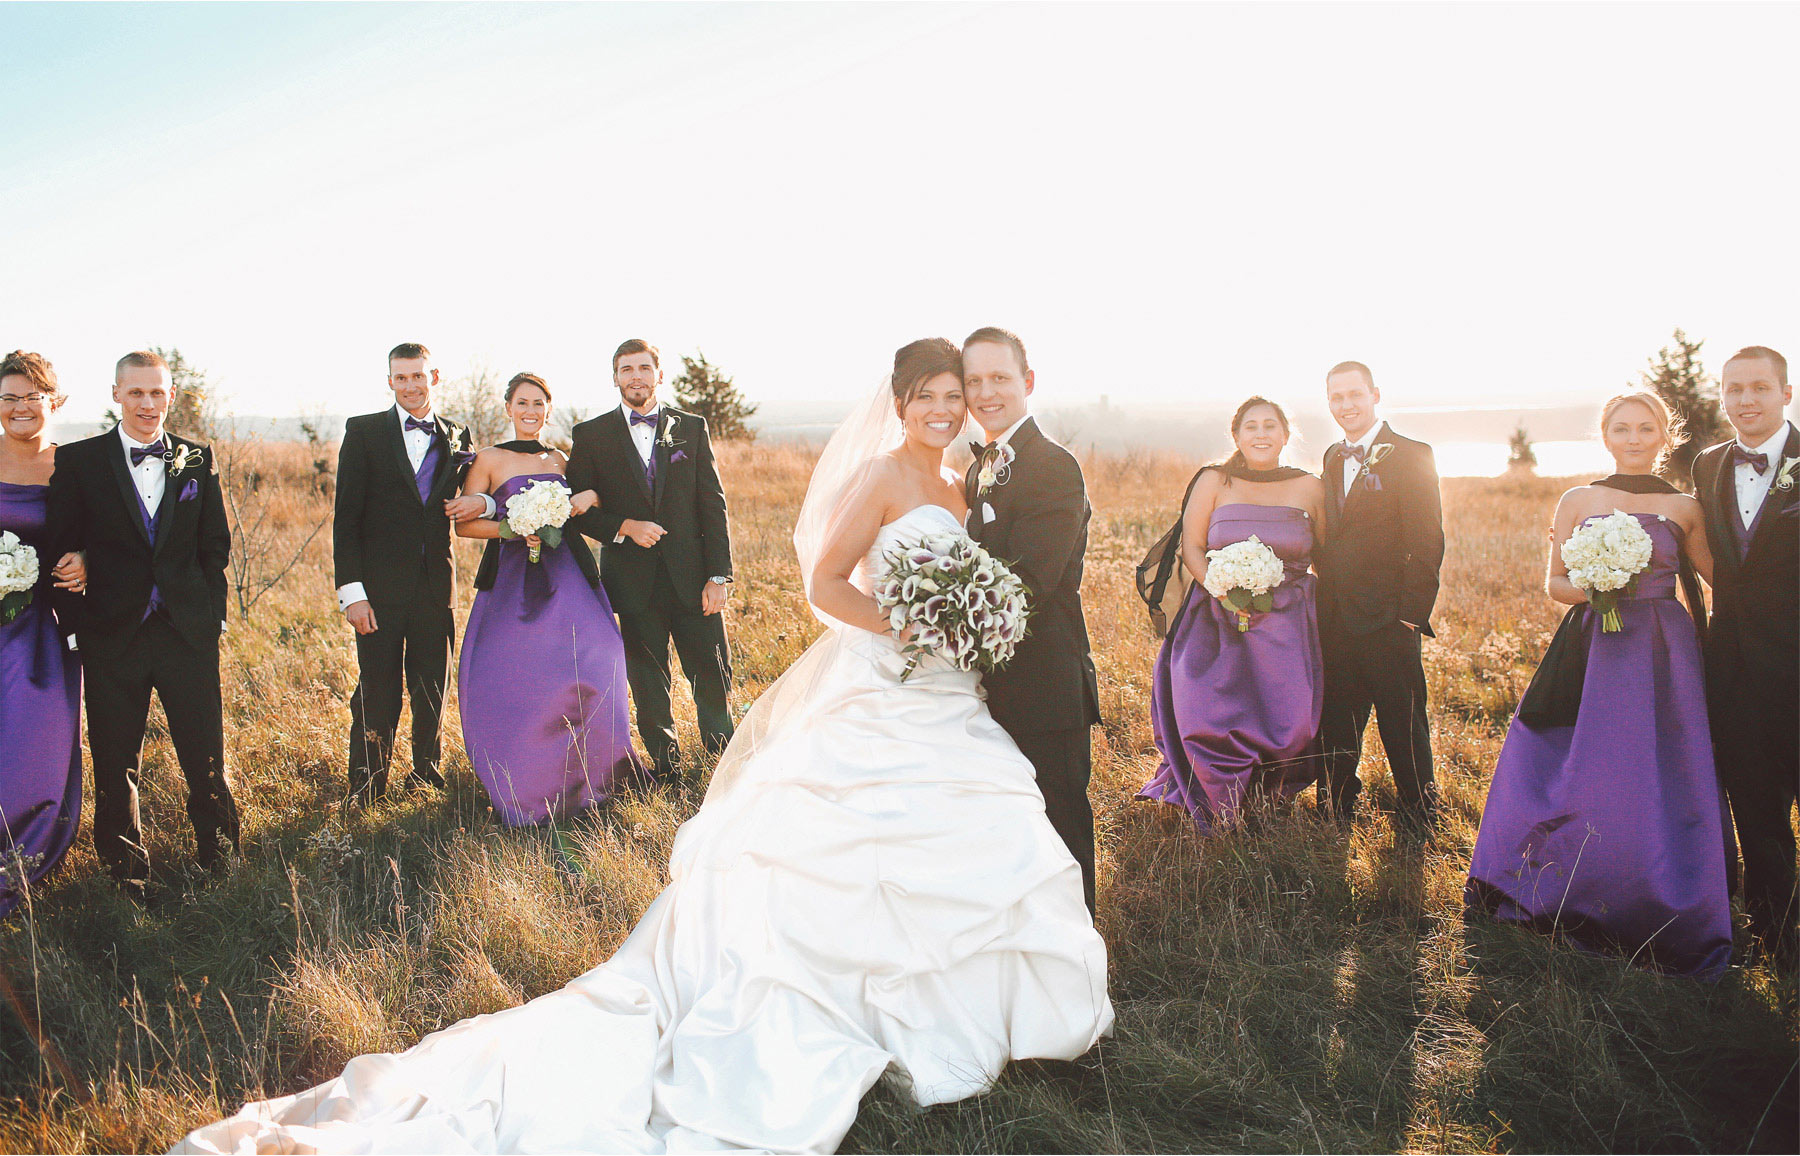 16-Eden-Prairie-Minnesota-Wedding-Photographer-by-Andrew-Vick-Photography-Fall-Autumn-Bearpath-Golf-Country-Club-Bride-Groom-Bridal-Party-Bridesmaids-Groomsmen-Field-Vintage-Brittany-and-Ryan.jpg